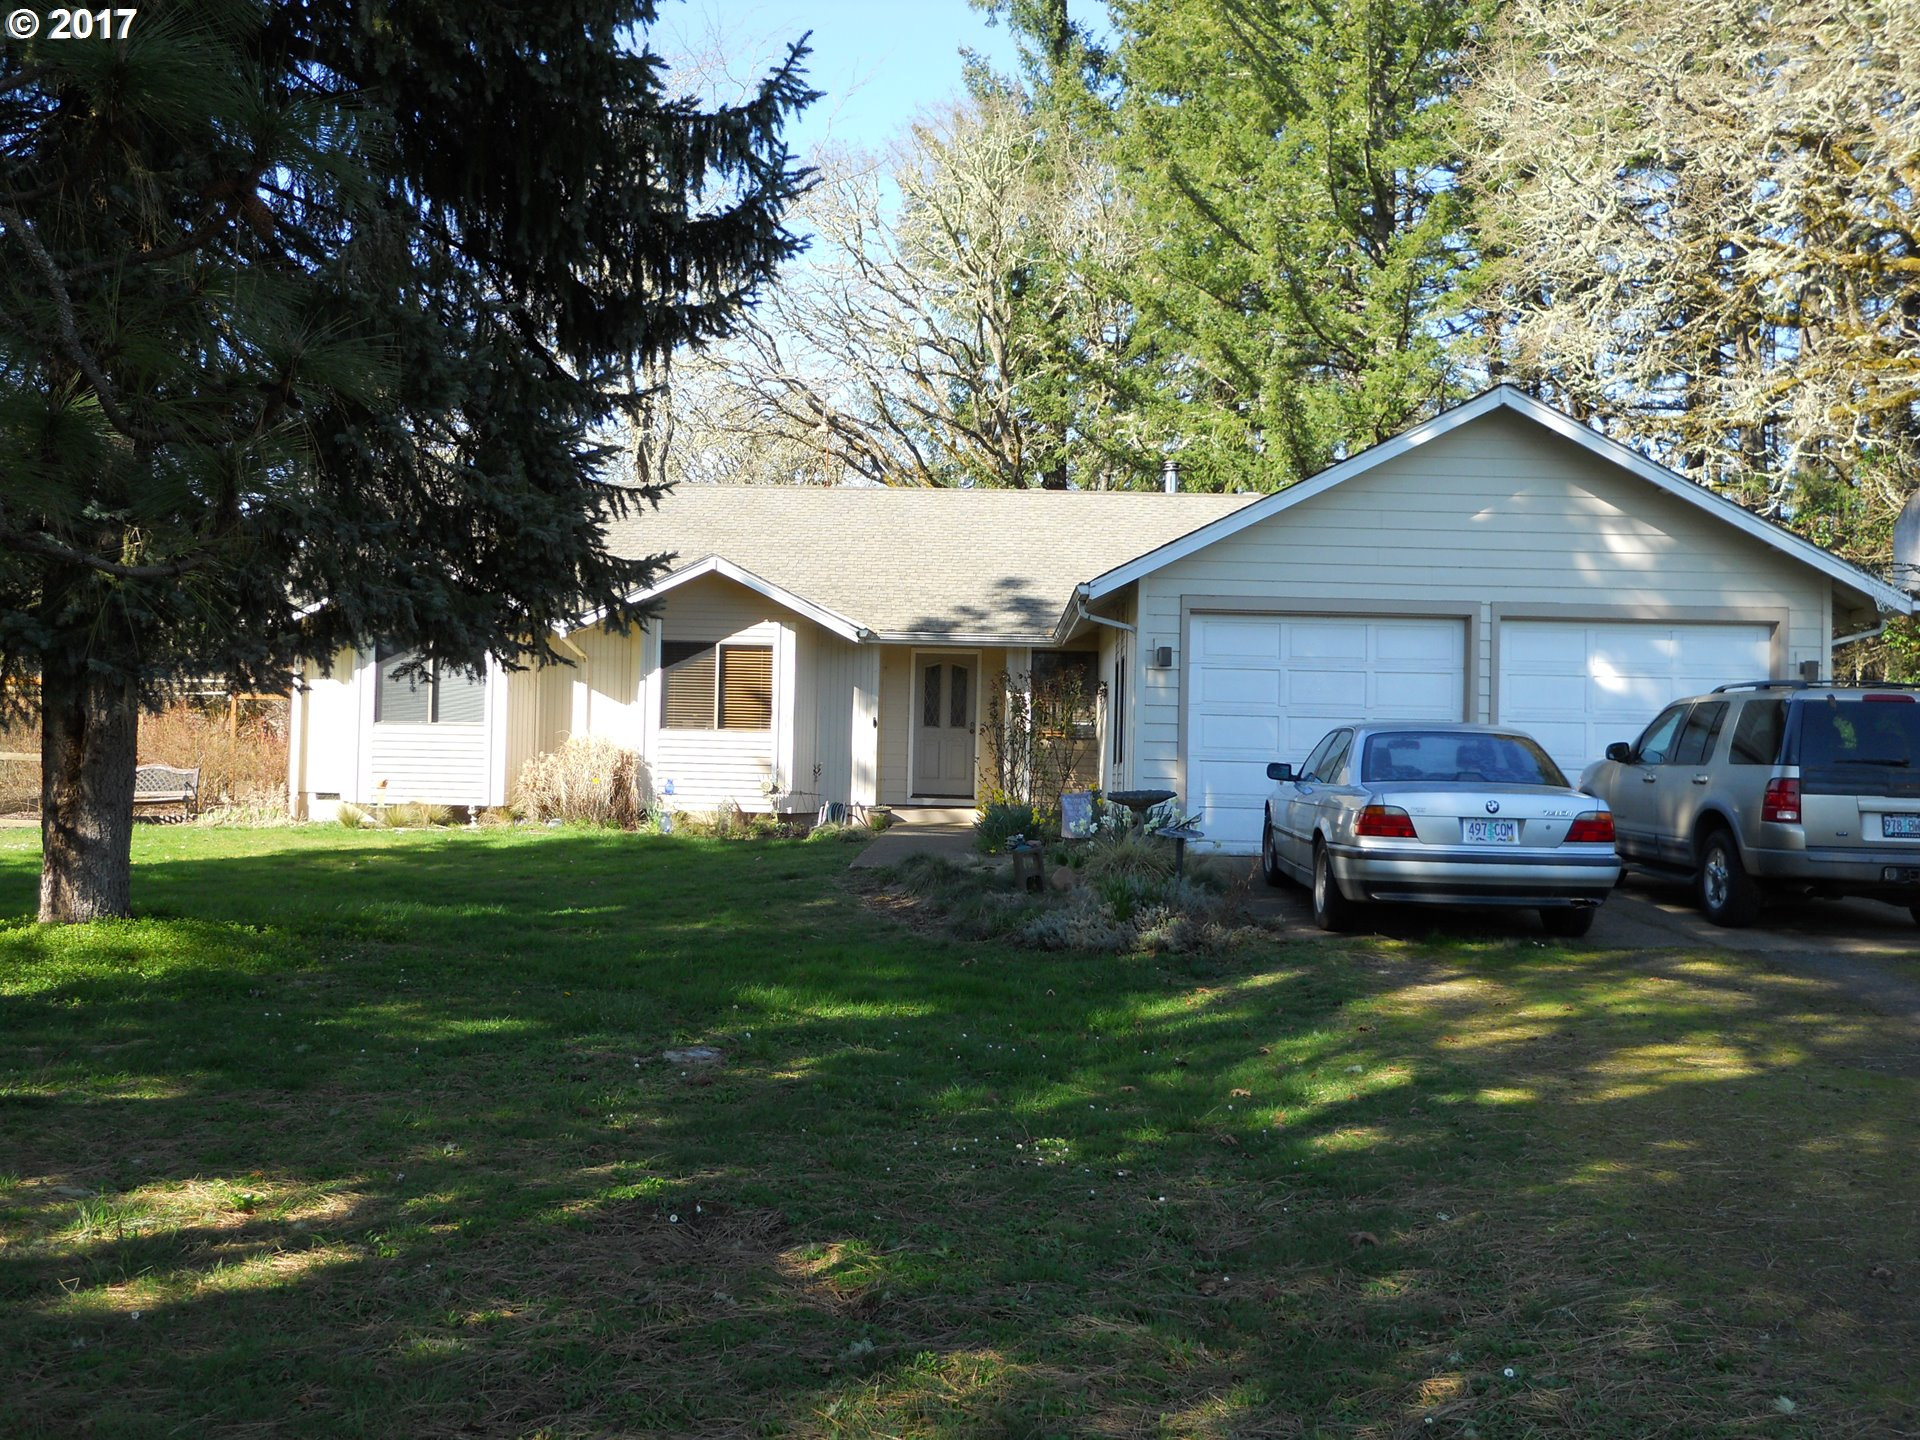 25641 LAWRENCE RD, Junction City, OR 97448